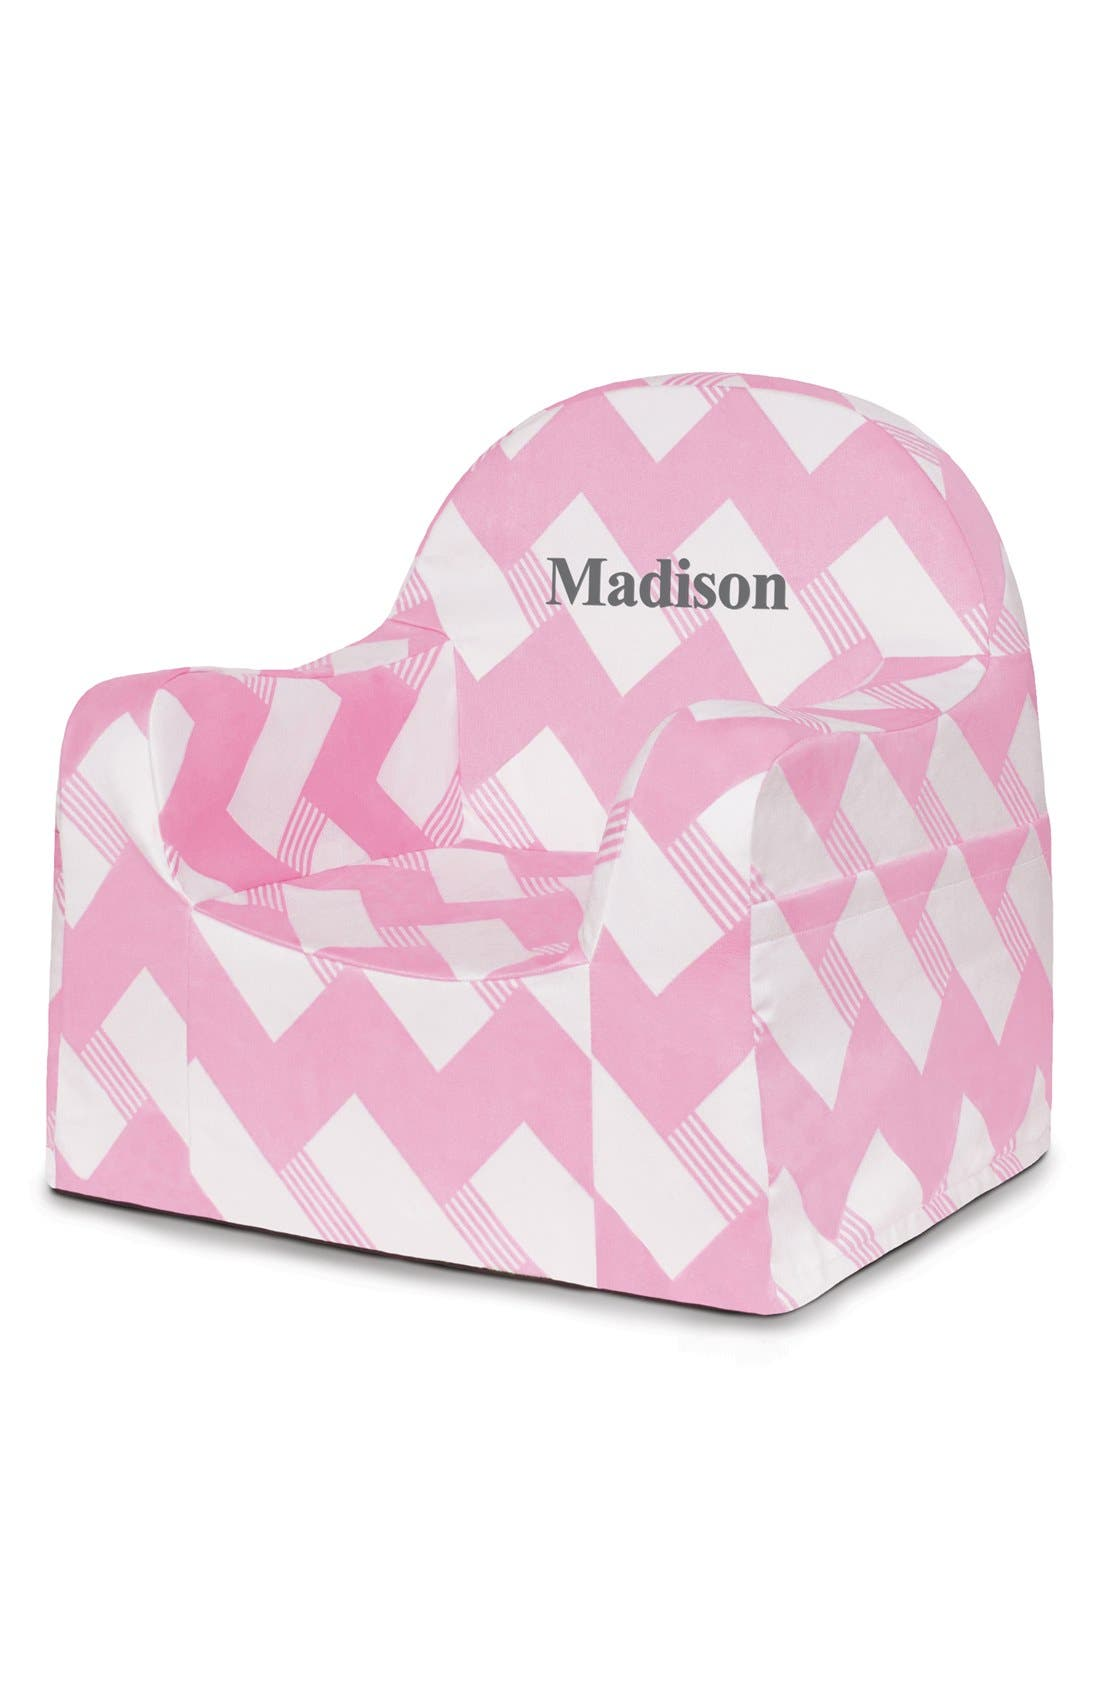 'Personalized Little Reader' Chair,                             Main thumbnail 3, color,